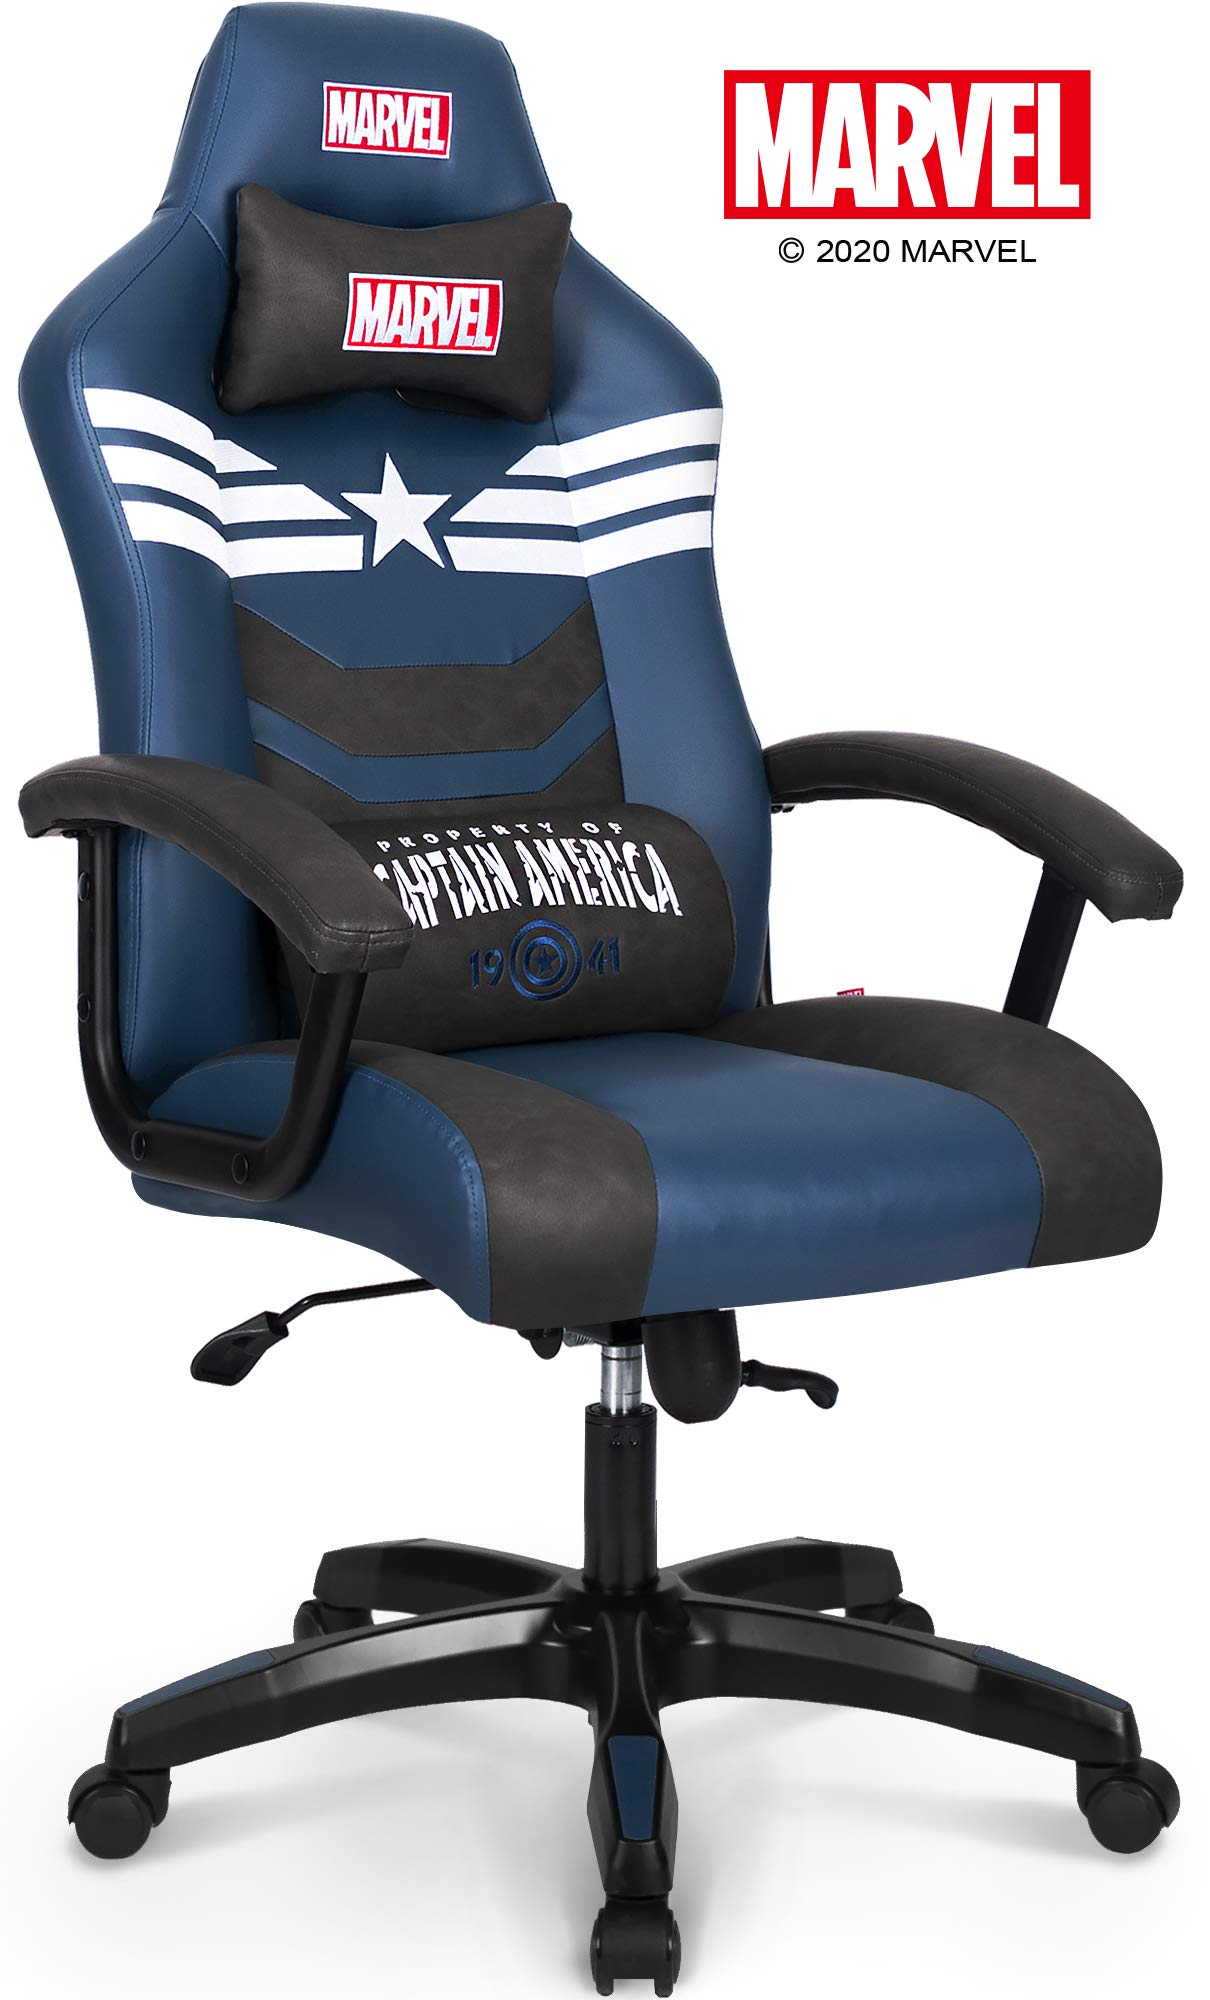 Picture of: Marvel Avengers Captain America Big Wide Heavy Duty 330 Lbs Gaming Chair Office Chair Computer Racing Desk Chair Blue White Endgame Infinity War Series Marvel Legends